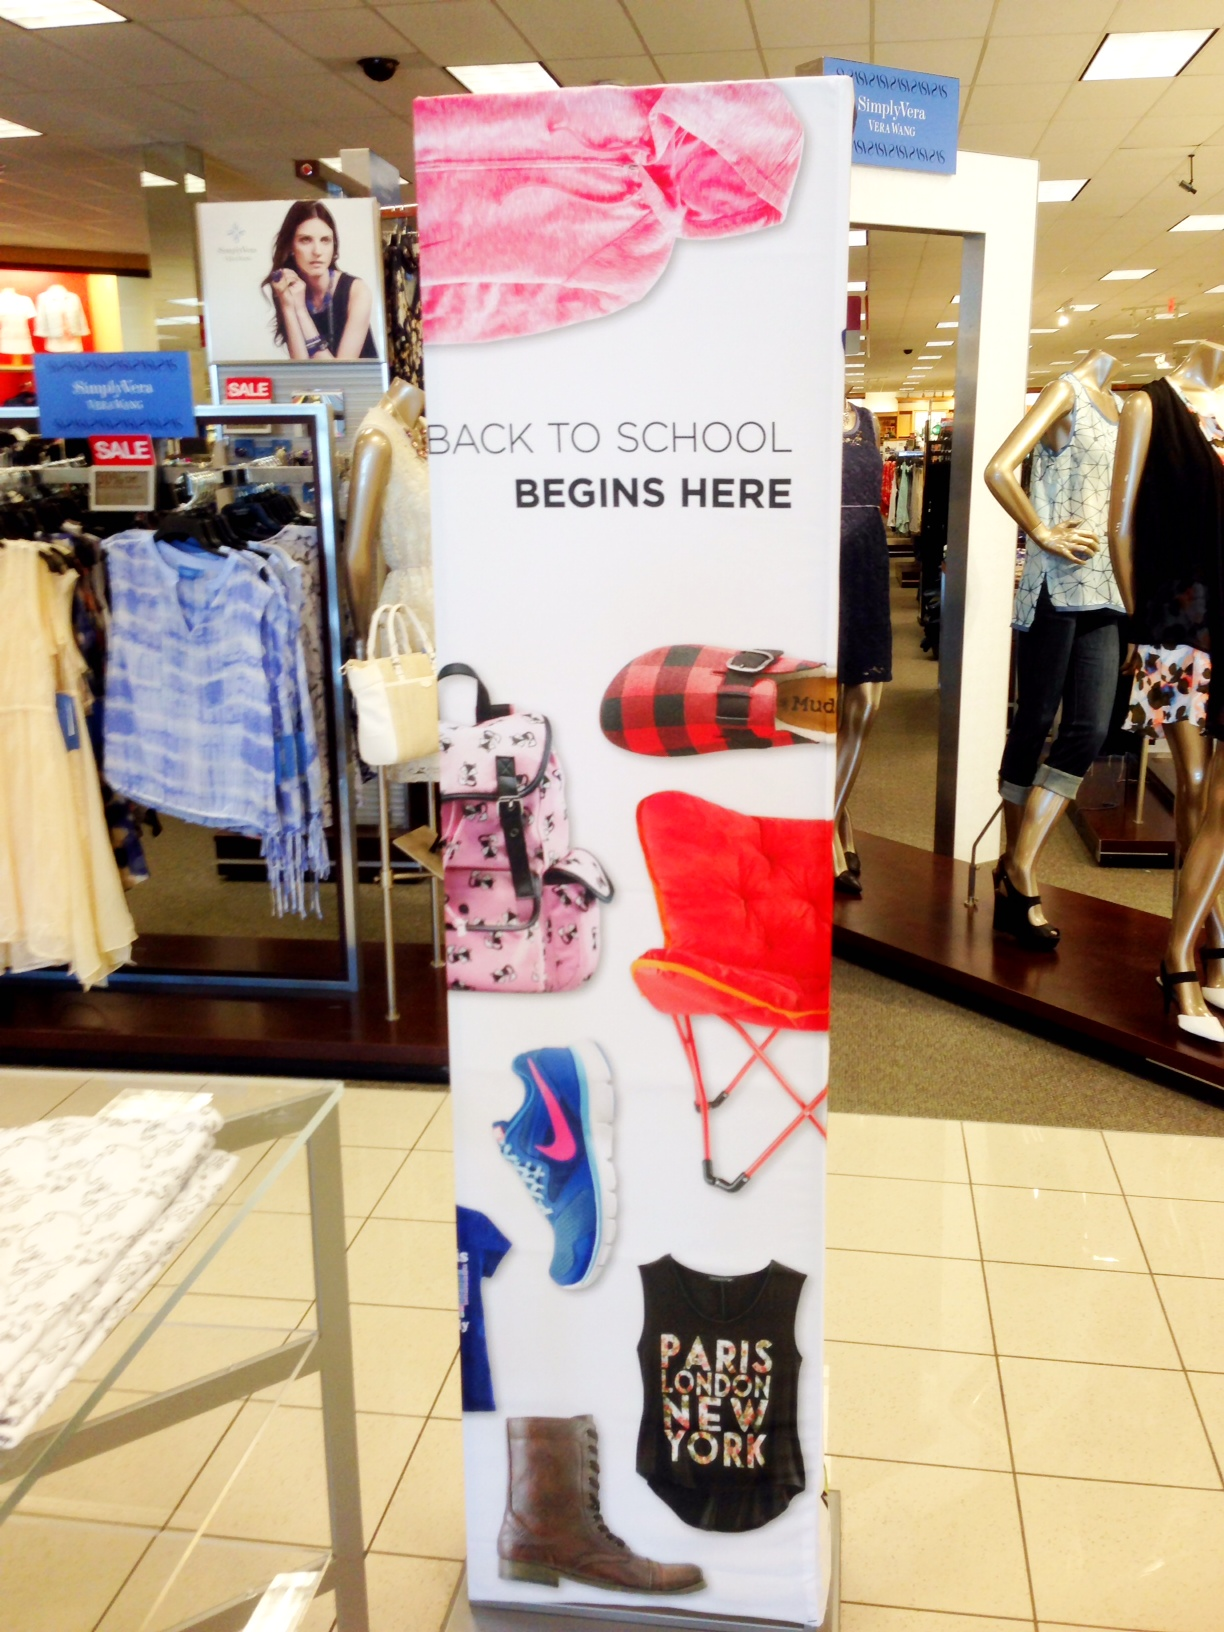 Back To School Shopping And Savings At Kohls And Office Max School